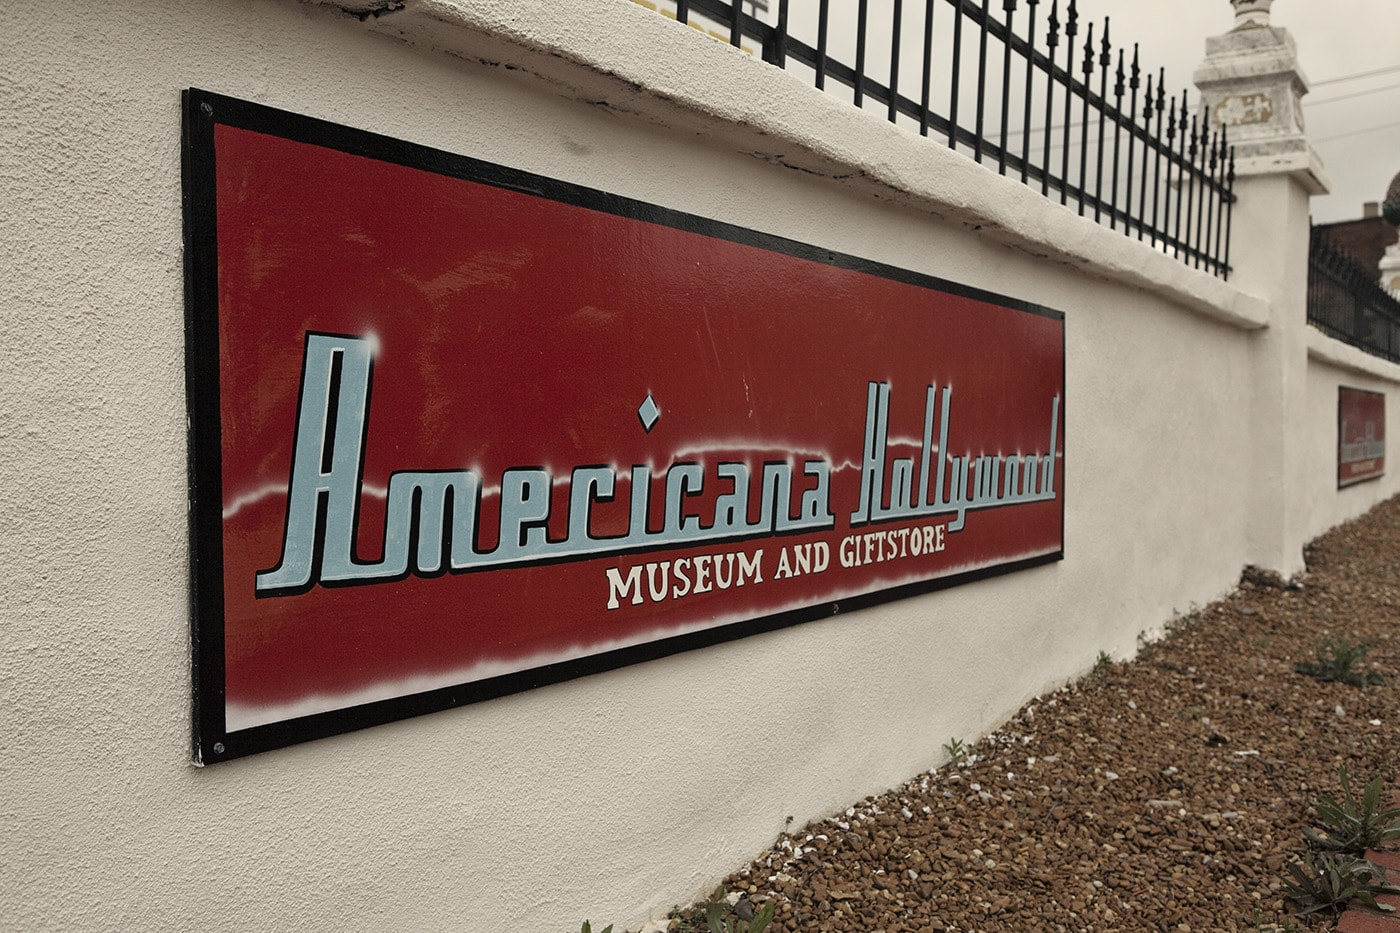 Americana Hollywood Museum in Metropolis, Illinois